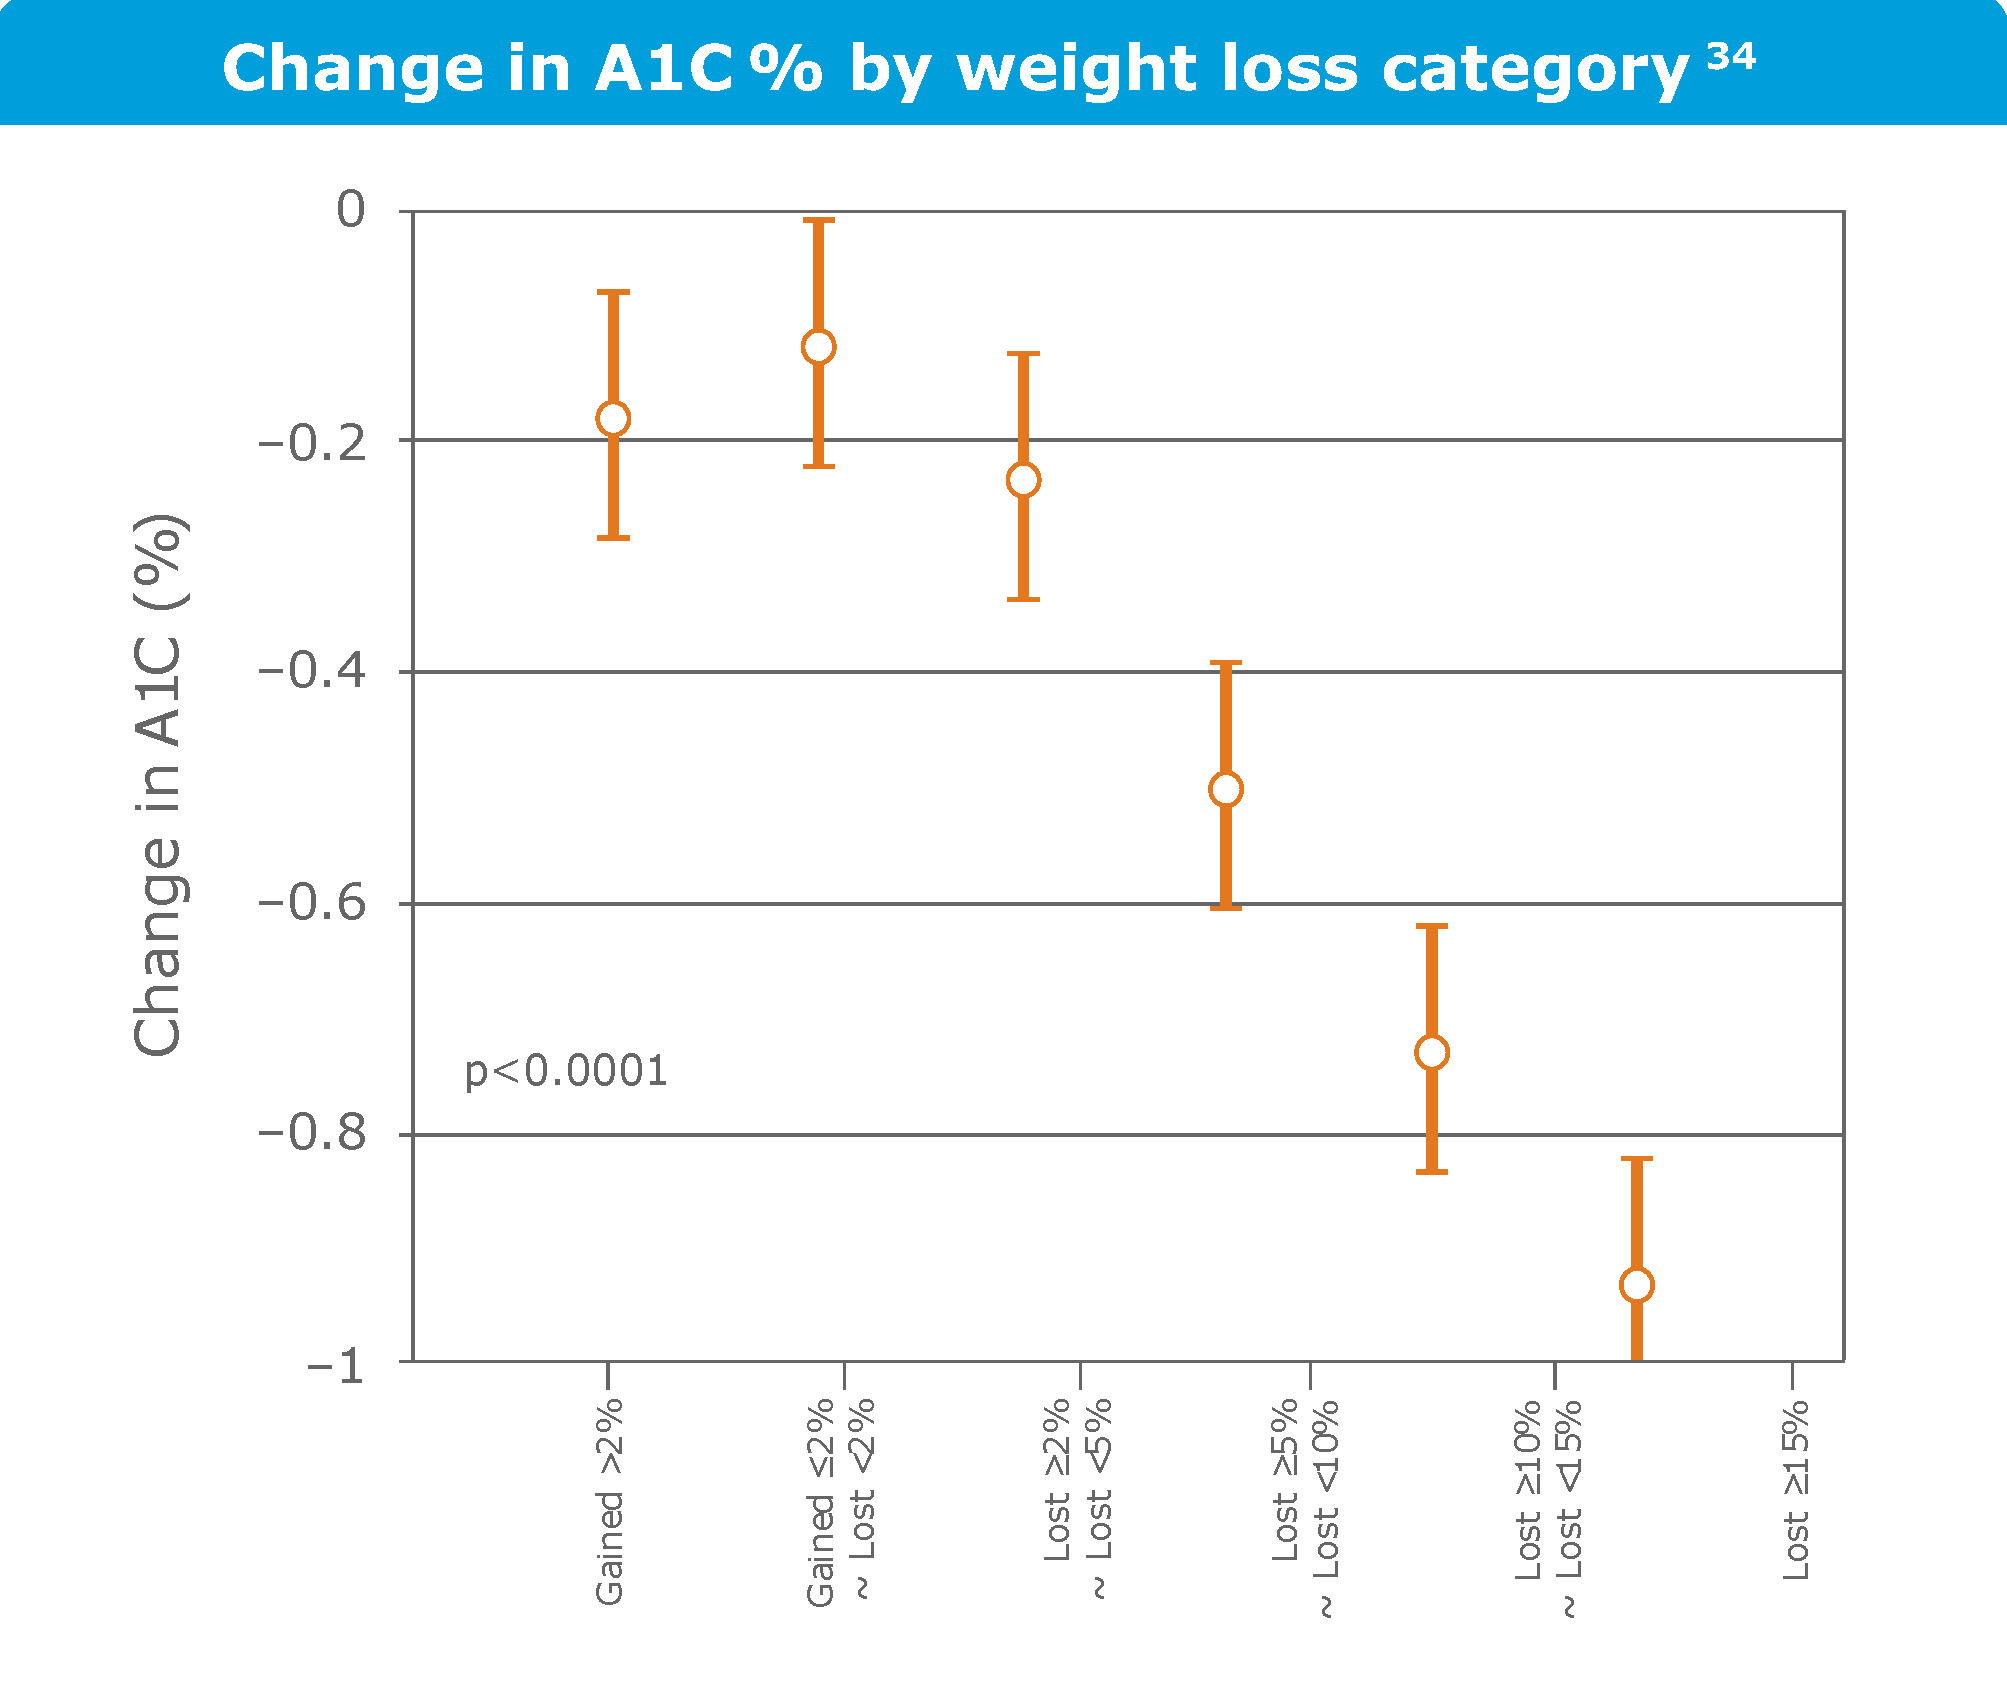 Change in HbA1c% by weight loss category